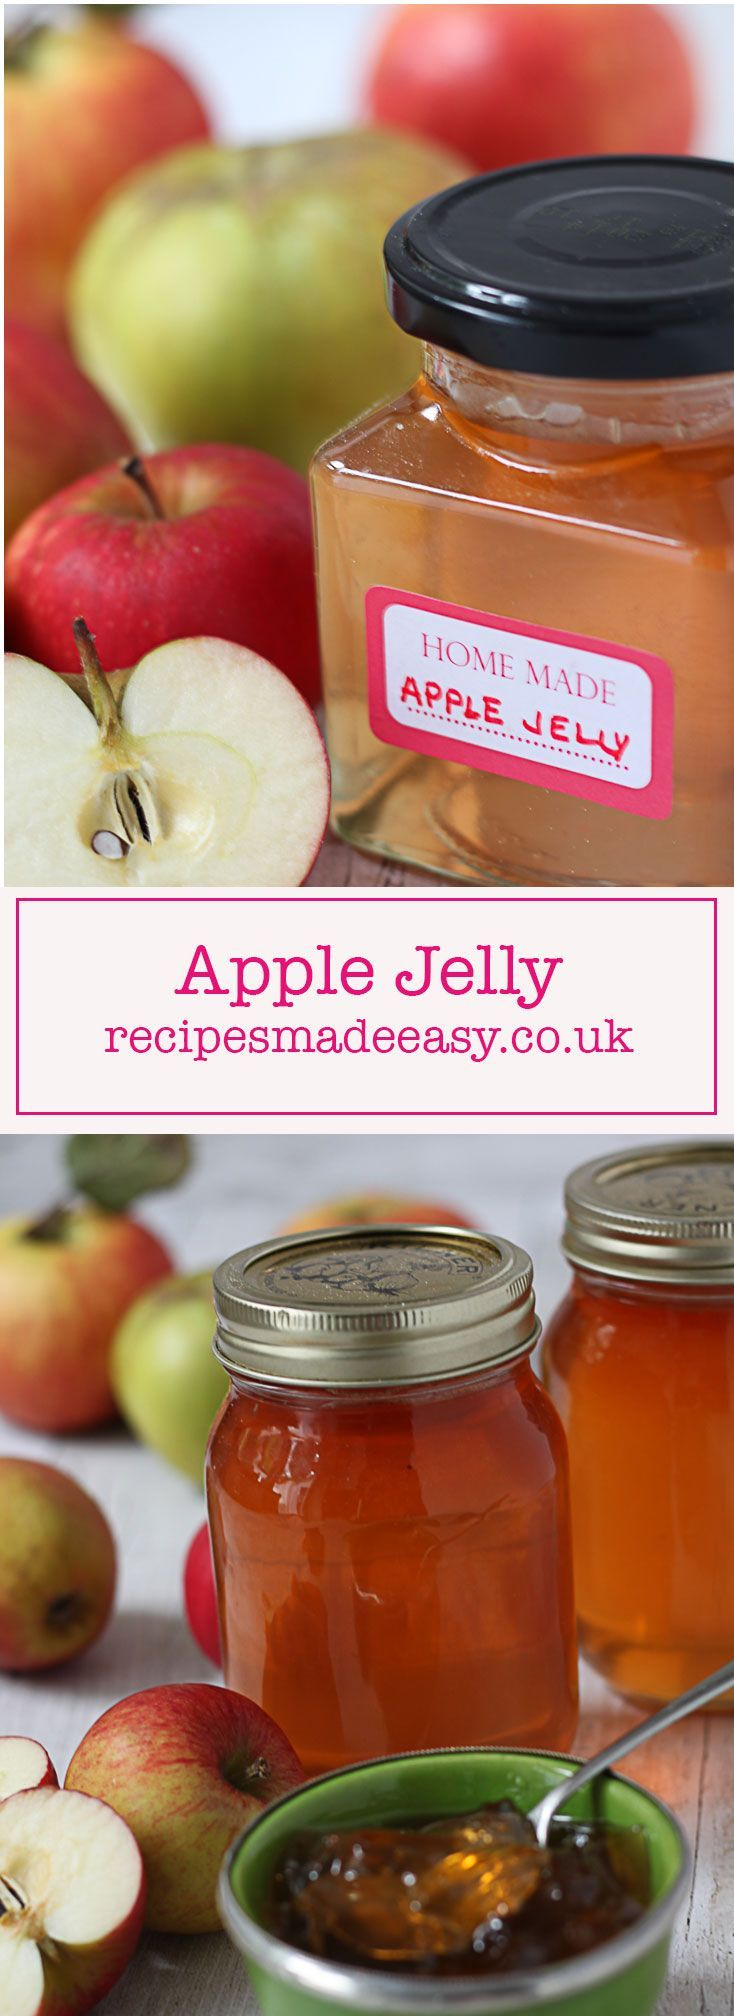 Apple jelly recipe apple jelly apples and easy for Apple pear recipes easy